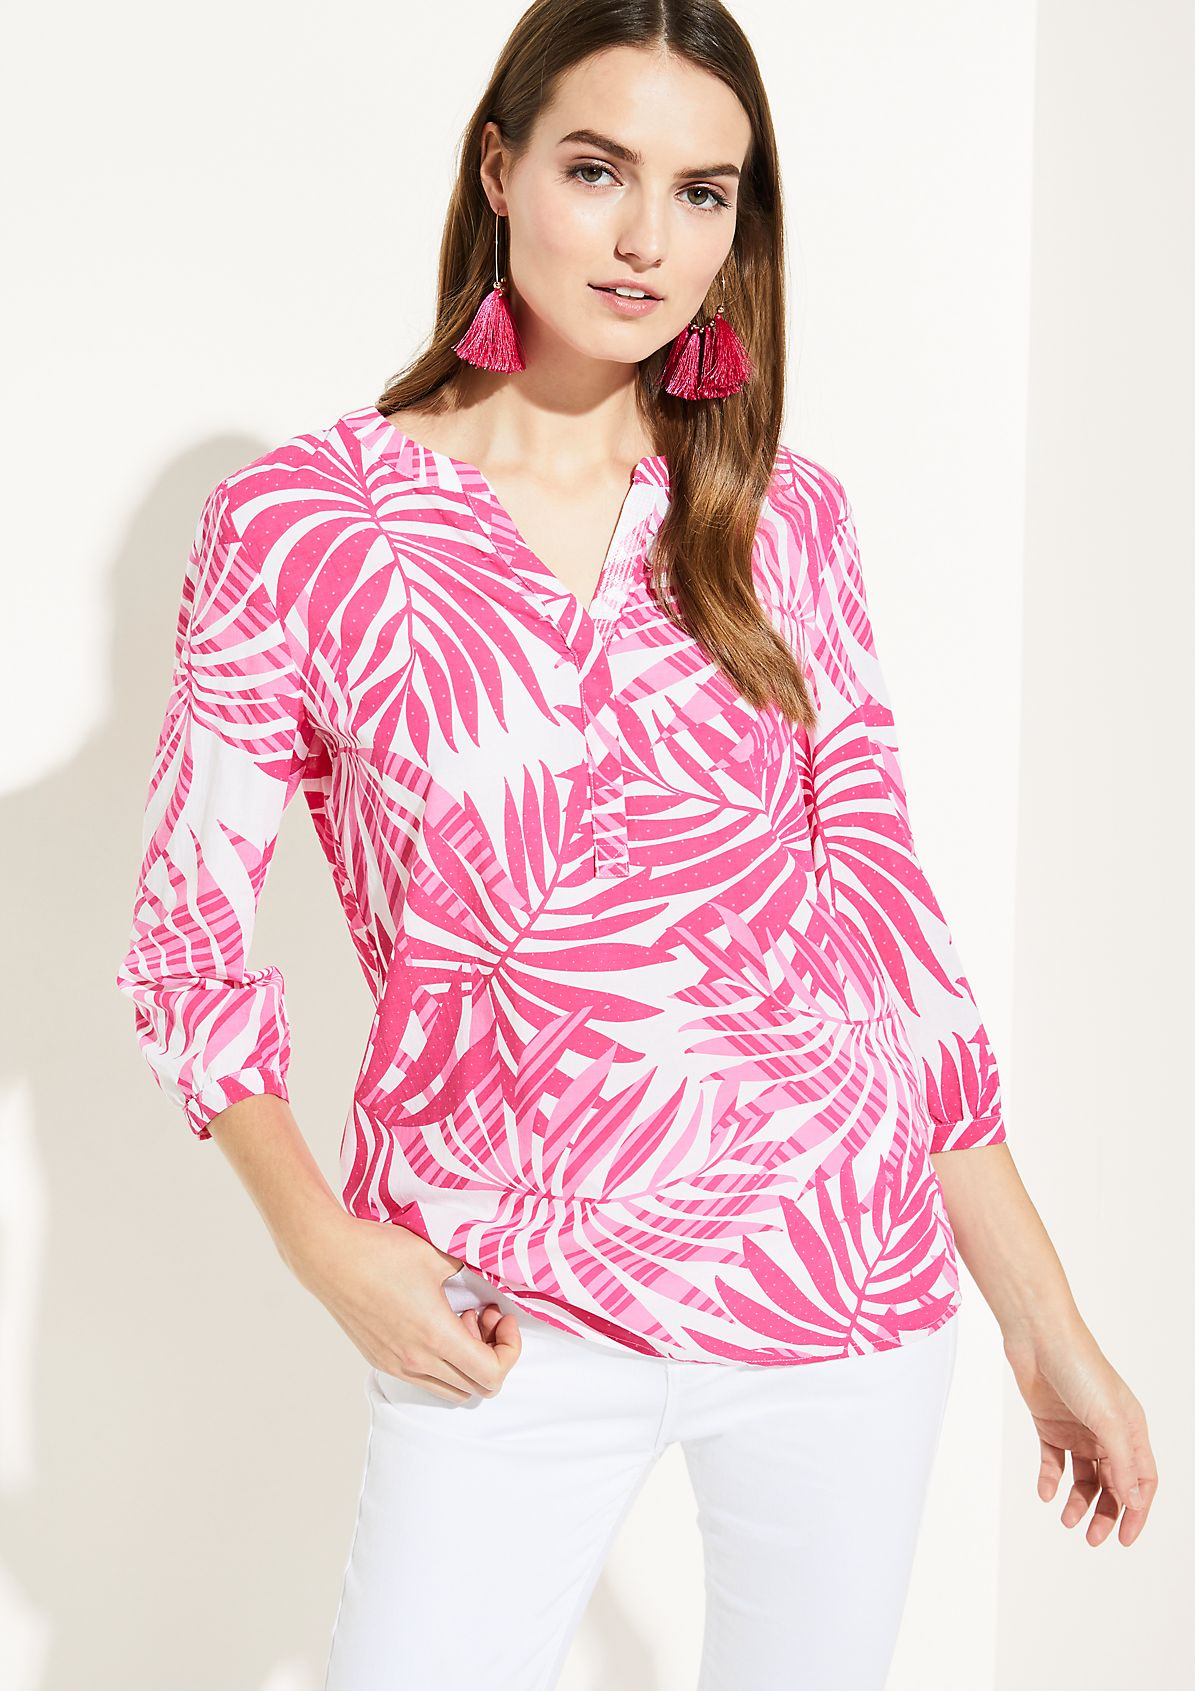 3/4-Arm Bluse mit Floral-Allovermuster